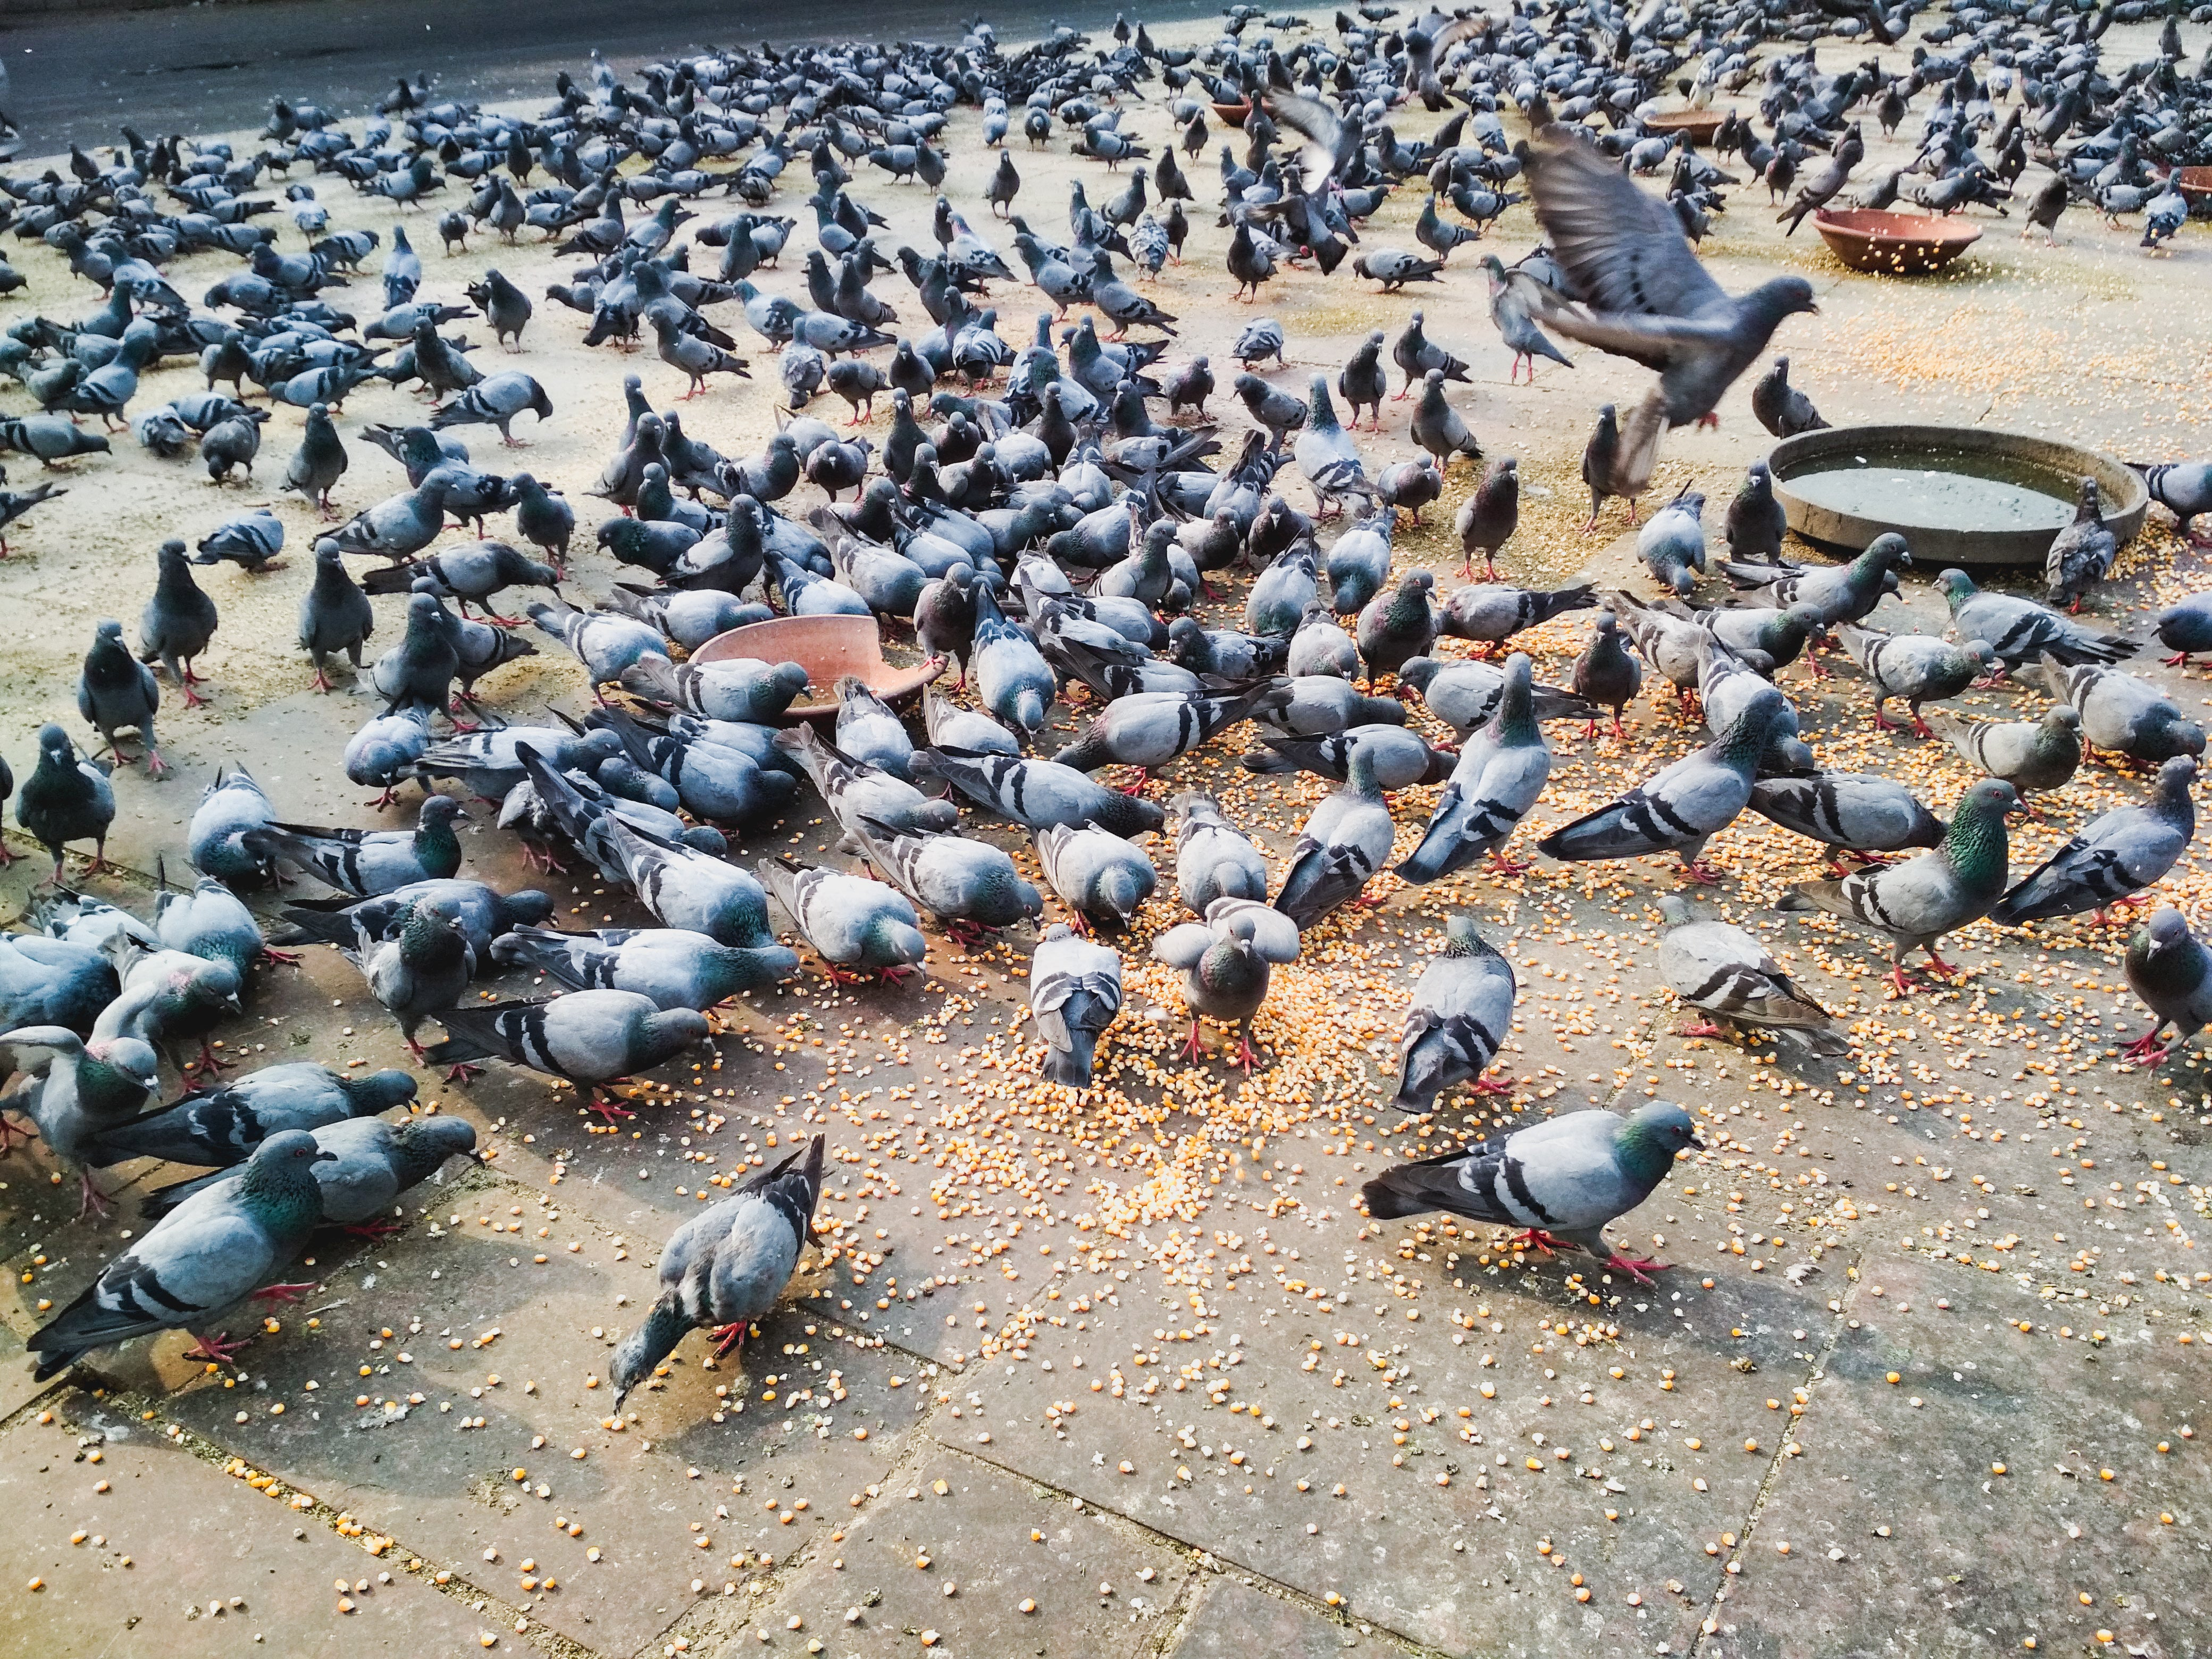 City Birds: Big-Brained with Few Offspring or Small-Brained with a Lot